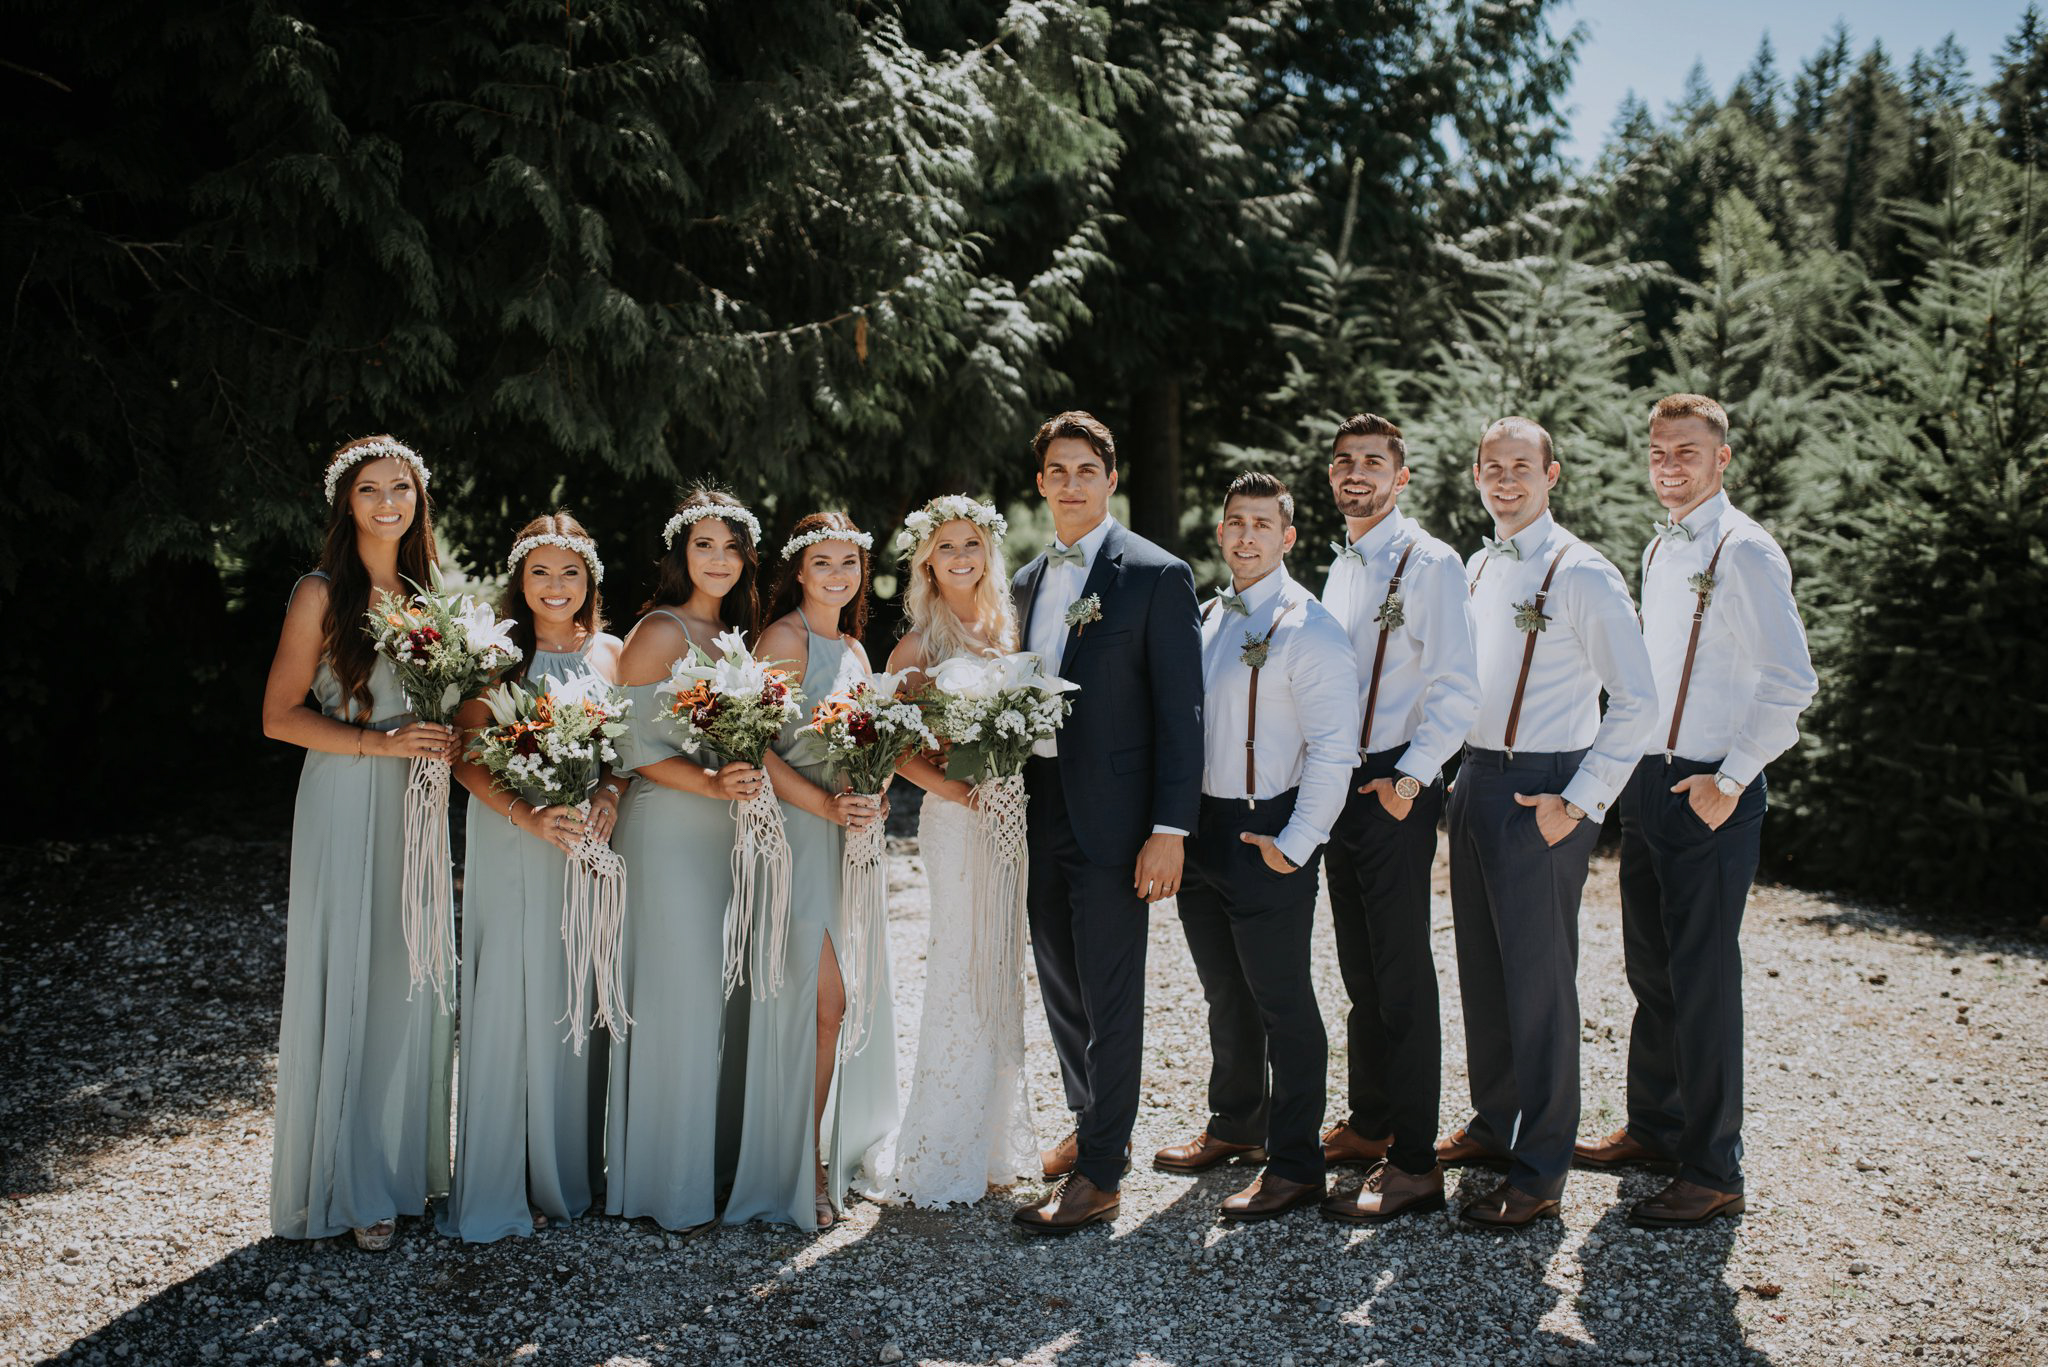 trinity-tree-farm-issaquah-washington-wedding-seattle-lifestyle-photographer-caitlyn-nikula-photography-44.jpg